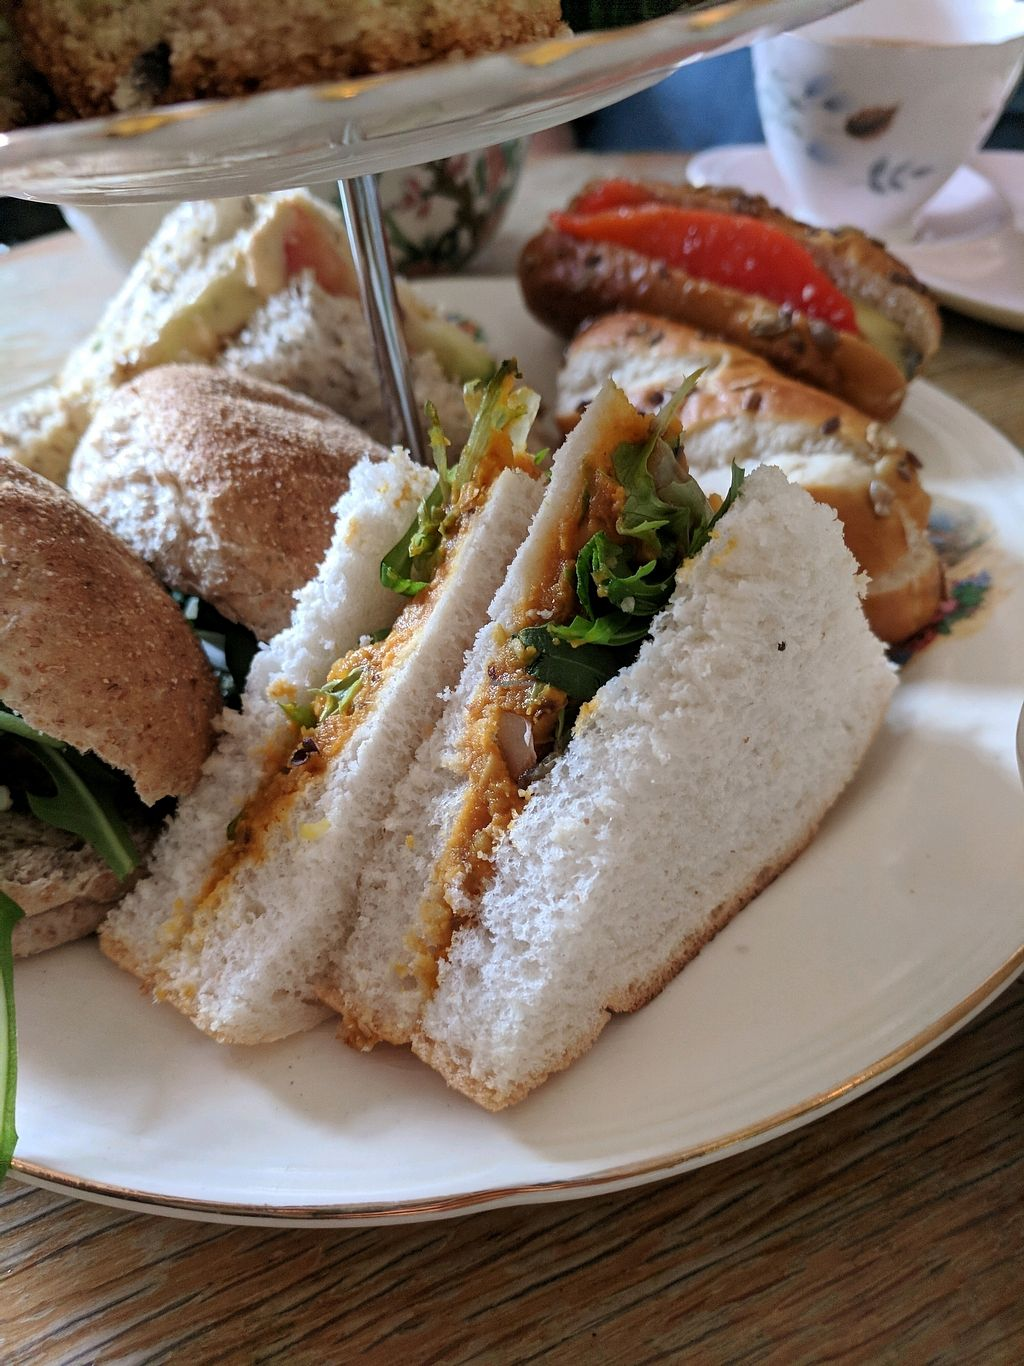 "Photo of Hidden Lane Tea Room  by <a href=""/members/profile/Jalzuri"">Jalzuri</a> <br/>vegan sandwich <br/> March 12, 2018  - <a href='/contact/abuse/image/78990/369846'>Report</a>"